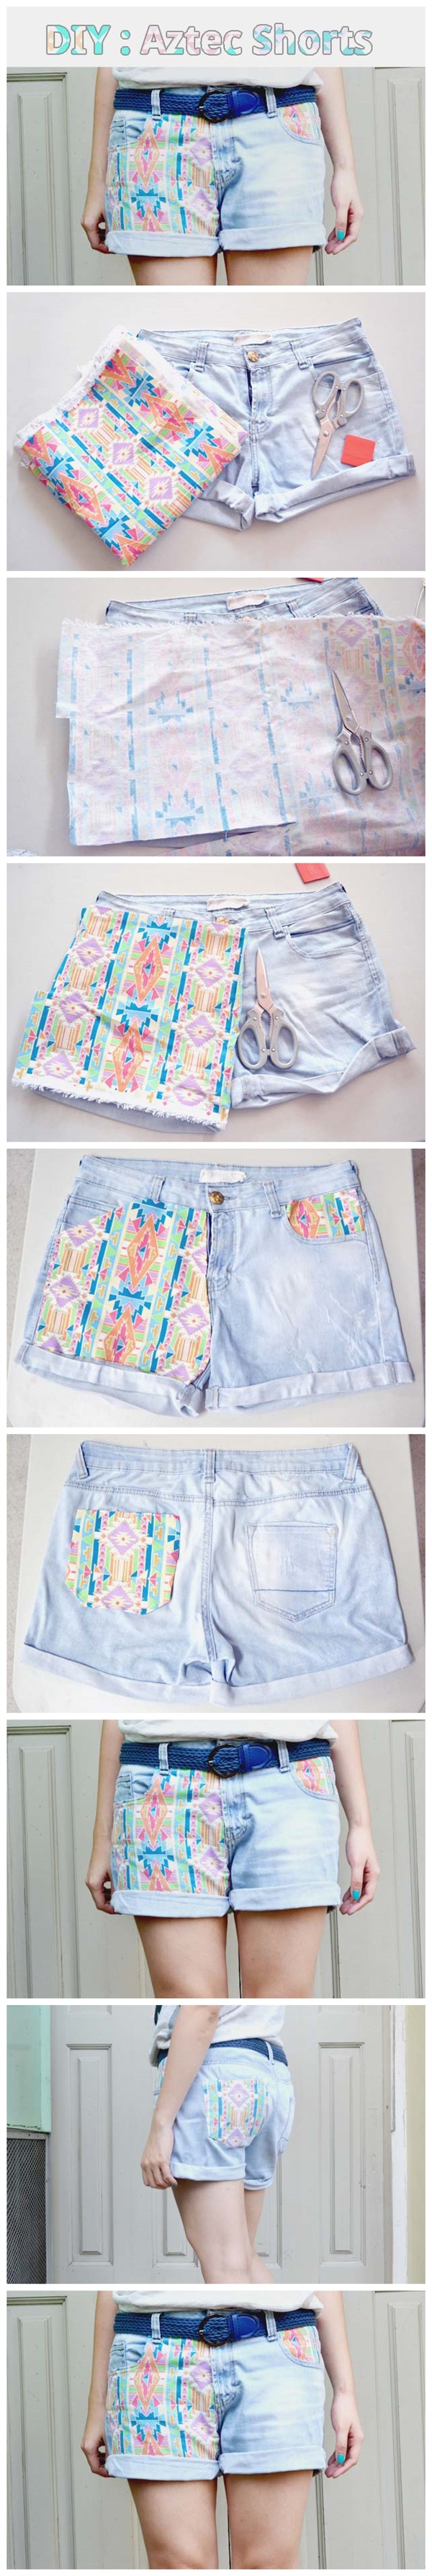 Diy Aztec Shorts Tutorial